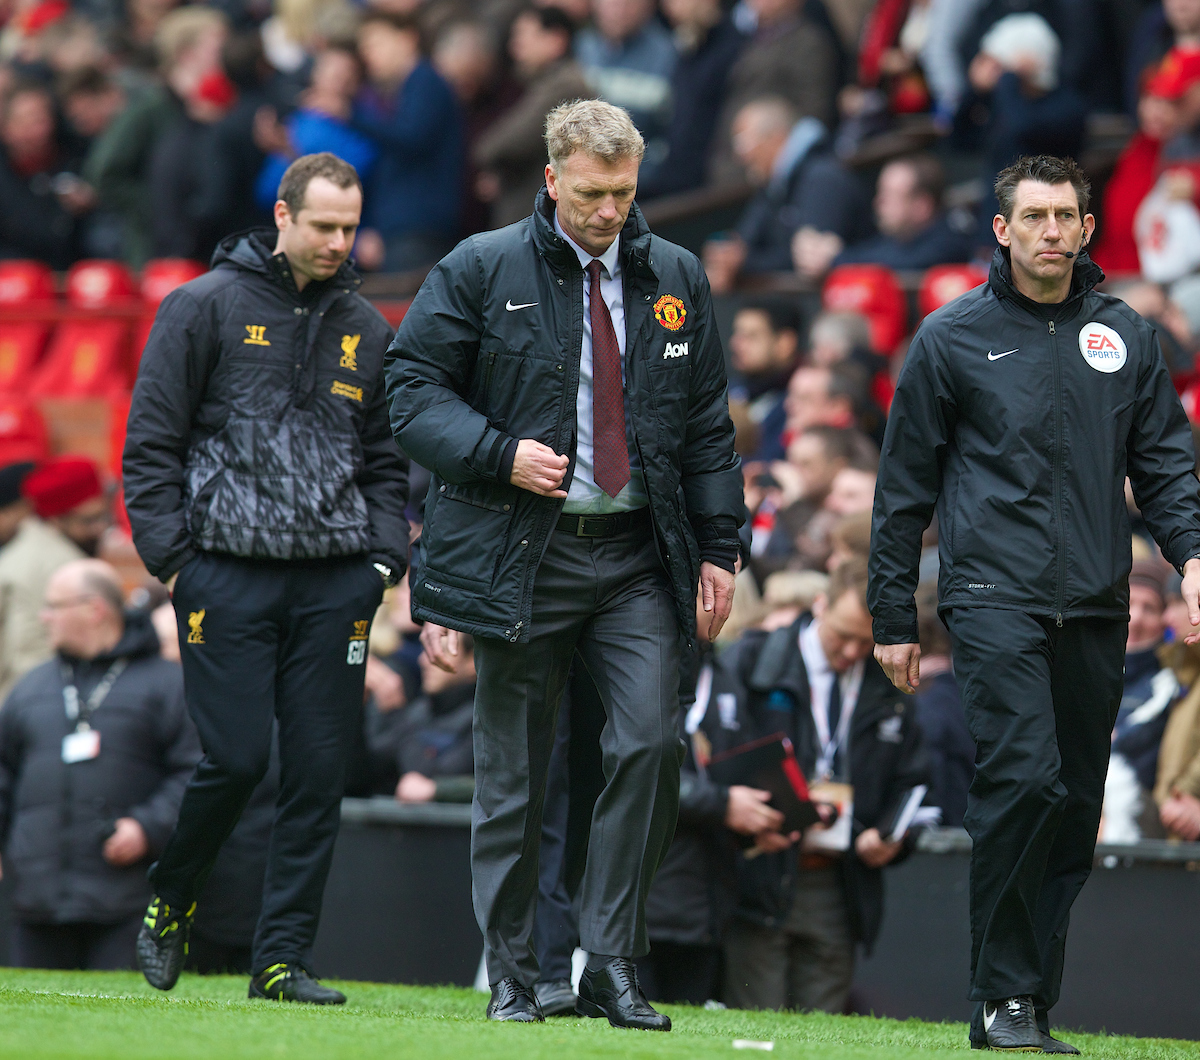 MANCHESTER, ENGLAND - Sunday, March 16, 2014: Manchester United's manager David Moyes looks dejected at half time during the Premiership match against Liverpool at Old Trafford. (Pic by David Rawcliffe/Propaganda)